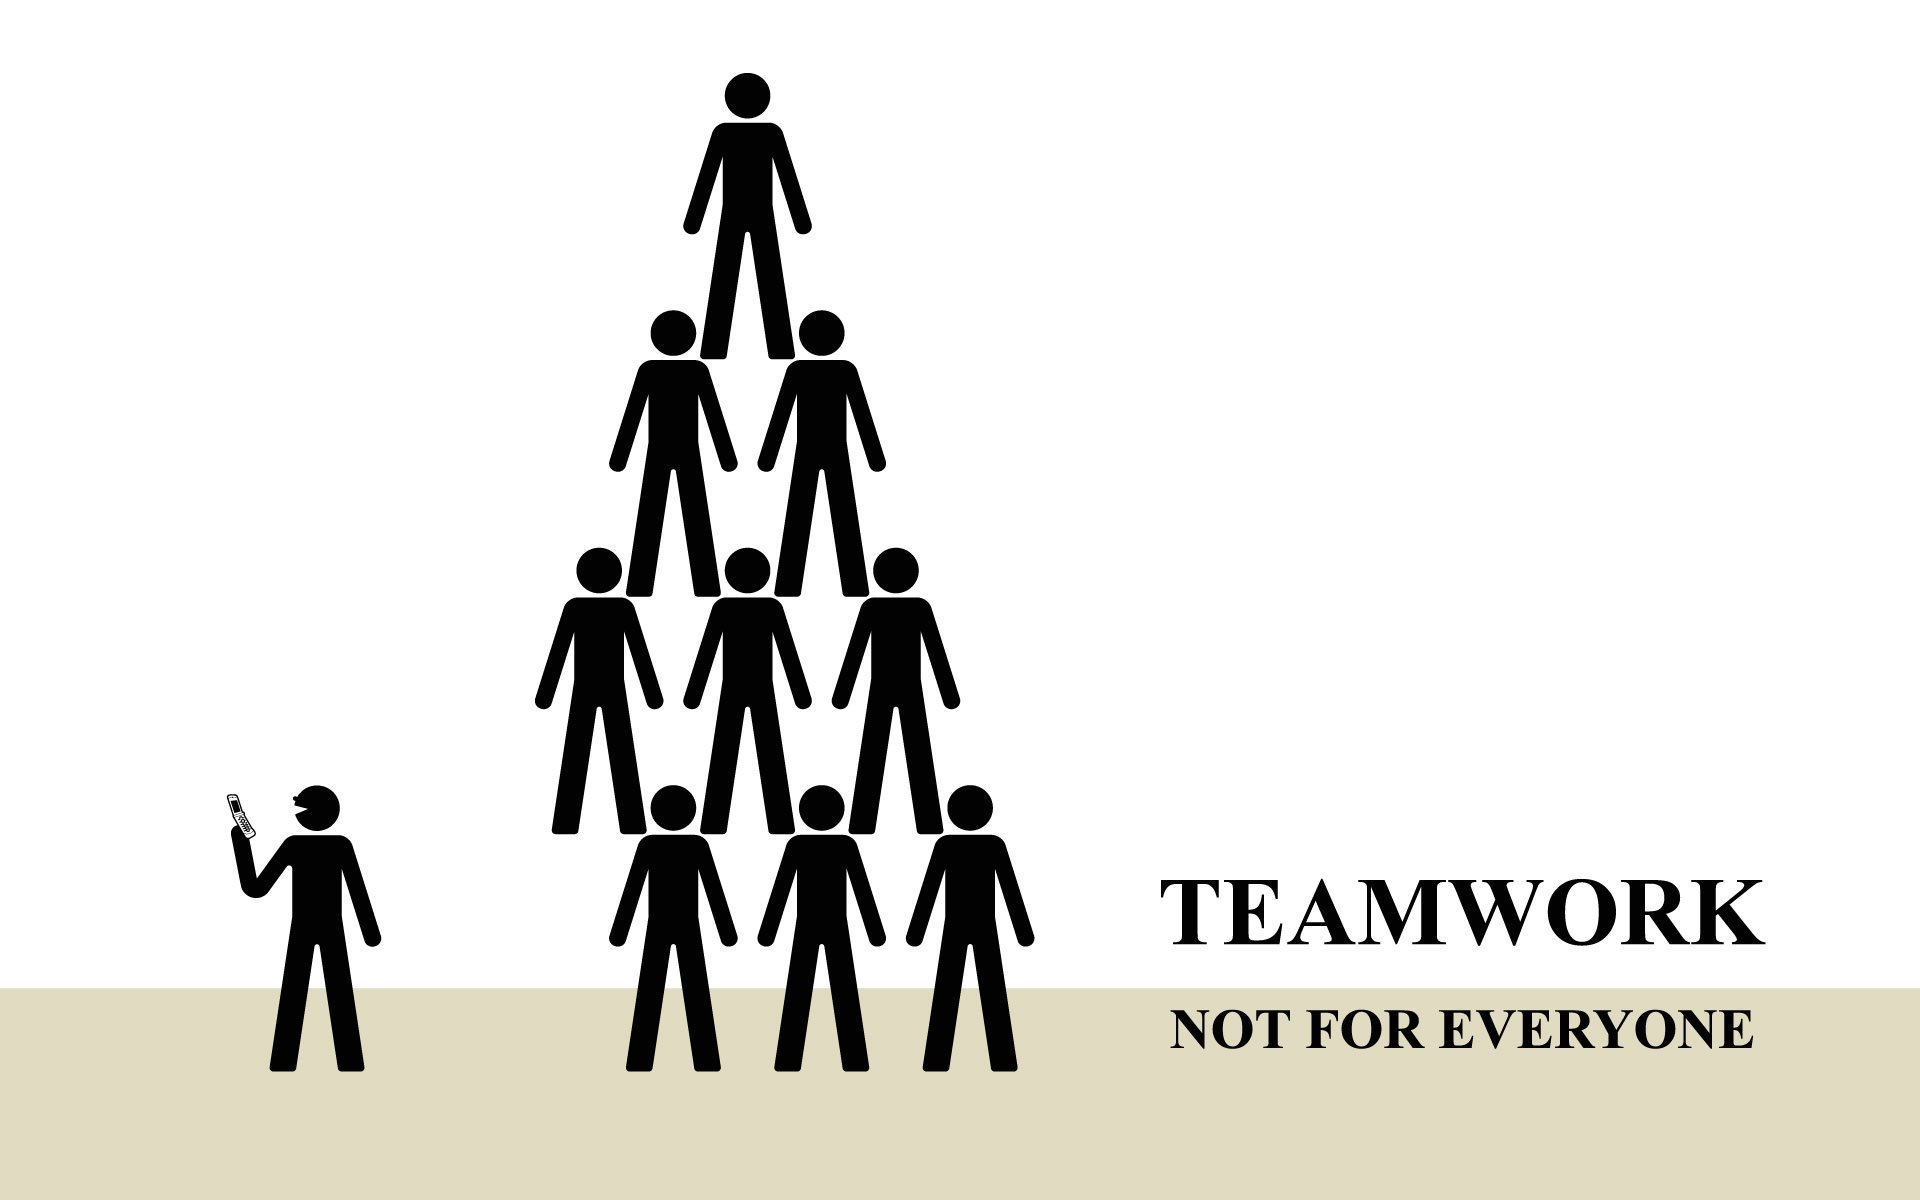 wallpapers for office. teamwork wallpaper 1920x1200 wallpapers for office s